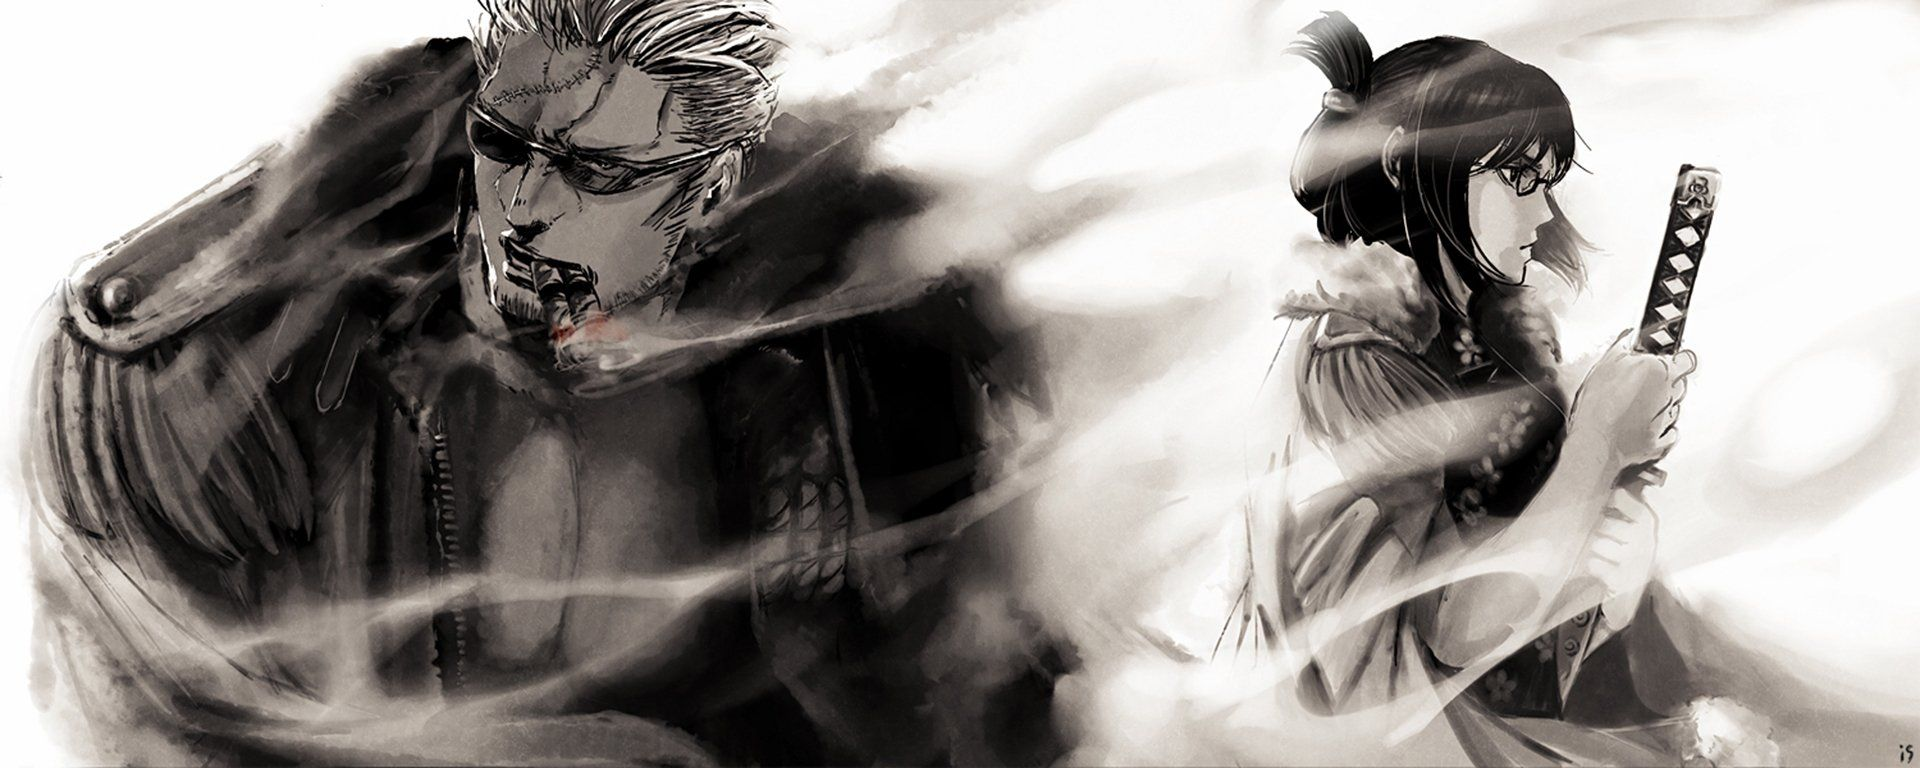 Smoker One Piece Wallpapers Top Free Smoker One Piece Backgrounds Wallpaperaccess